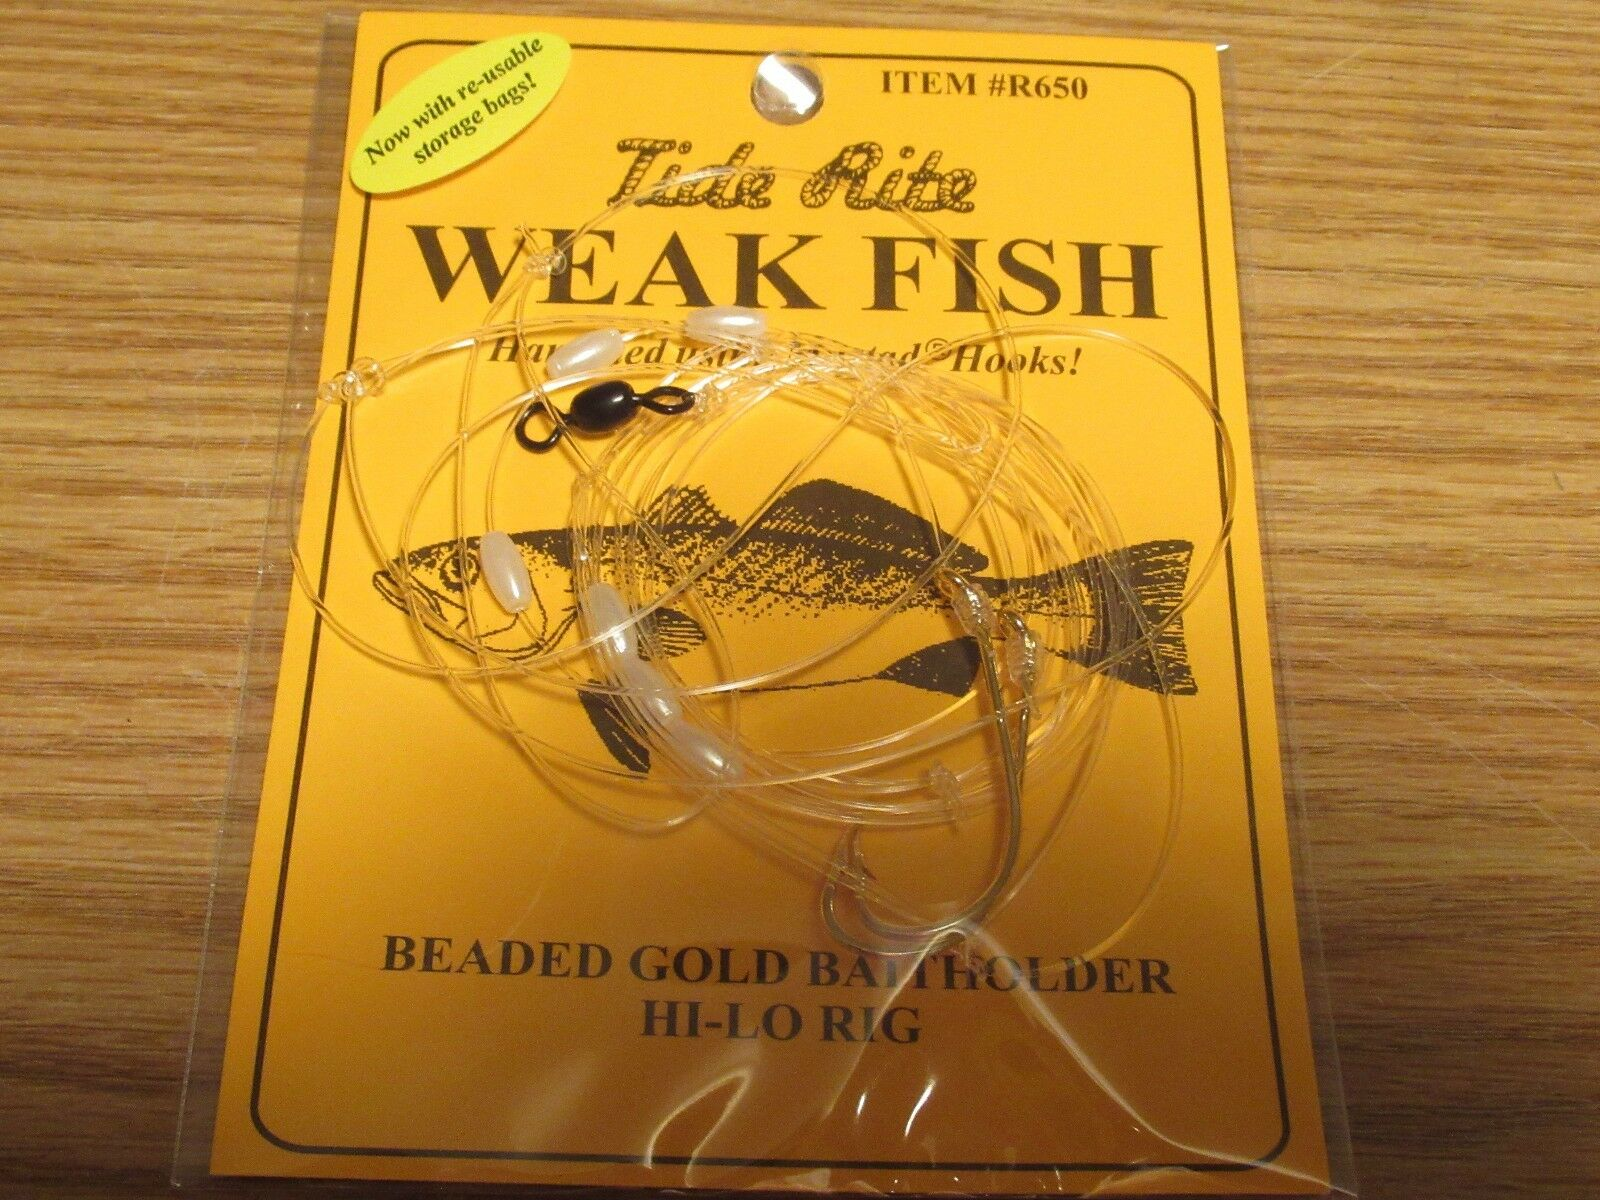 24 WEAKFISH SEA TROUT TIDE RITE  R650  BEADED  HI-LO RIG  FISHING MUSTAD HOOKS  first-class service